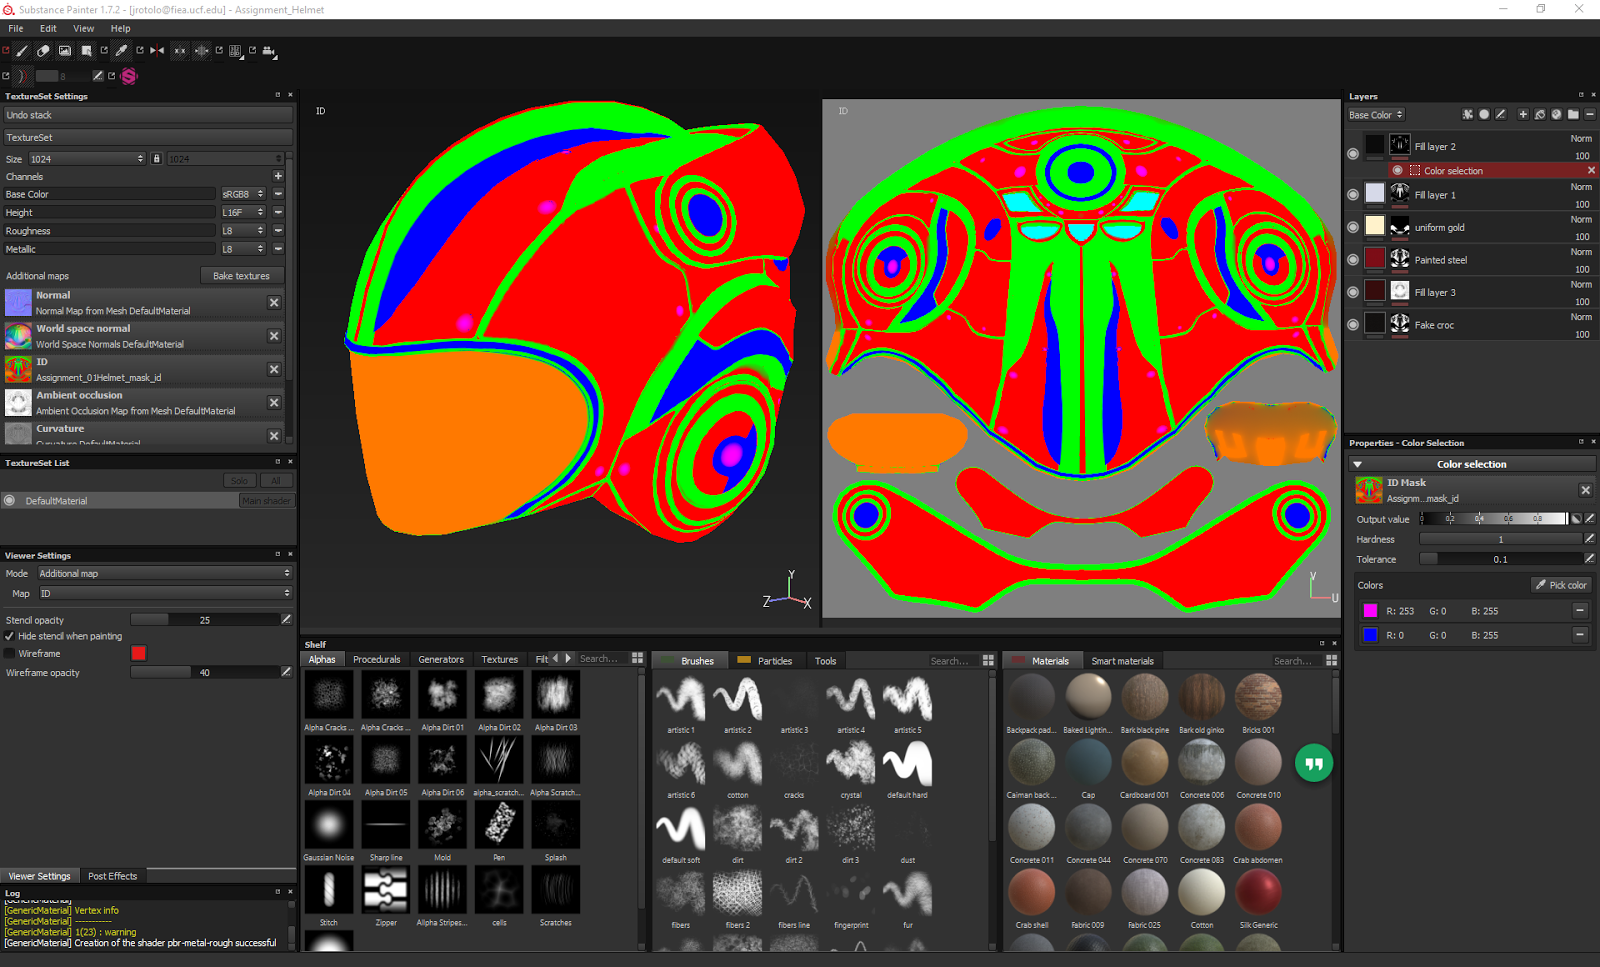 the clown pass or mask id map is used as a way to quickly mask what materials or colors will be applied to which part of the asset